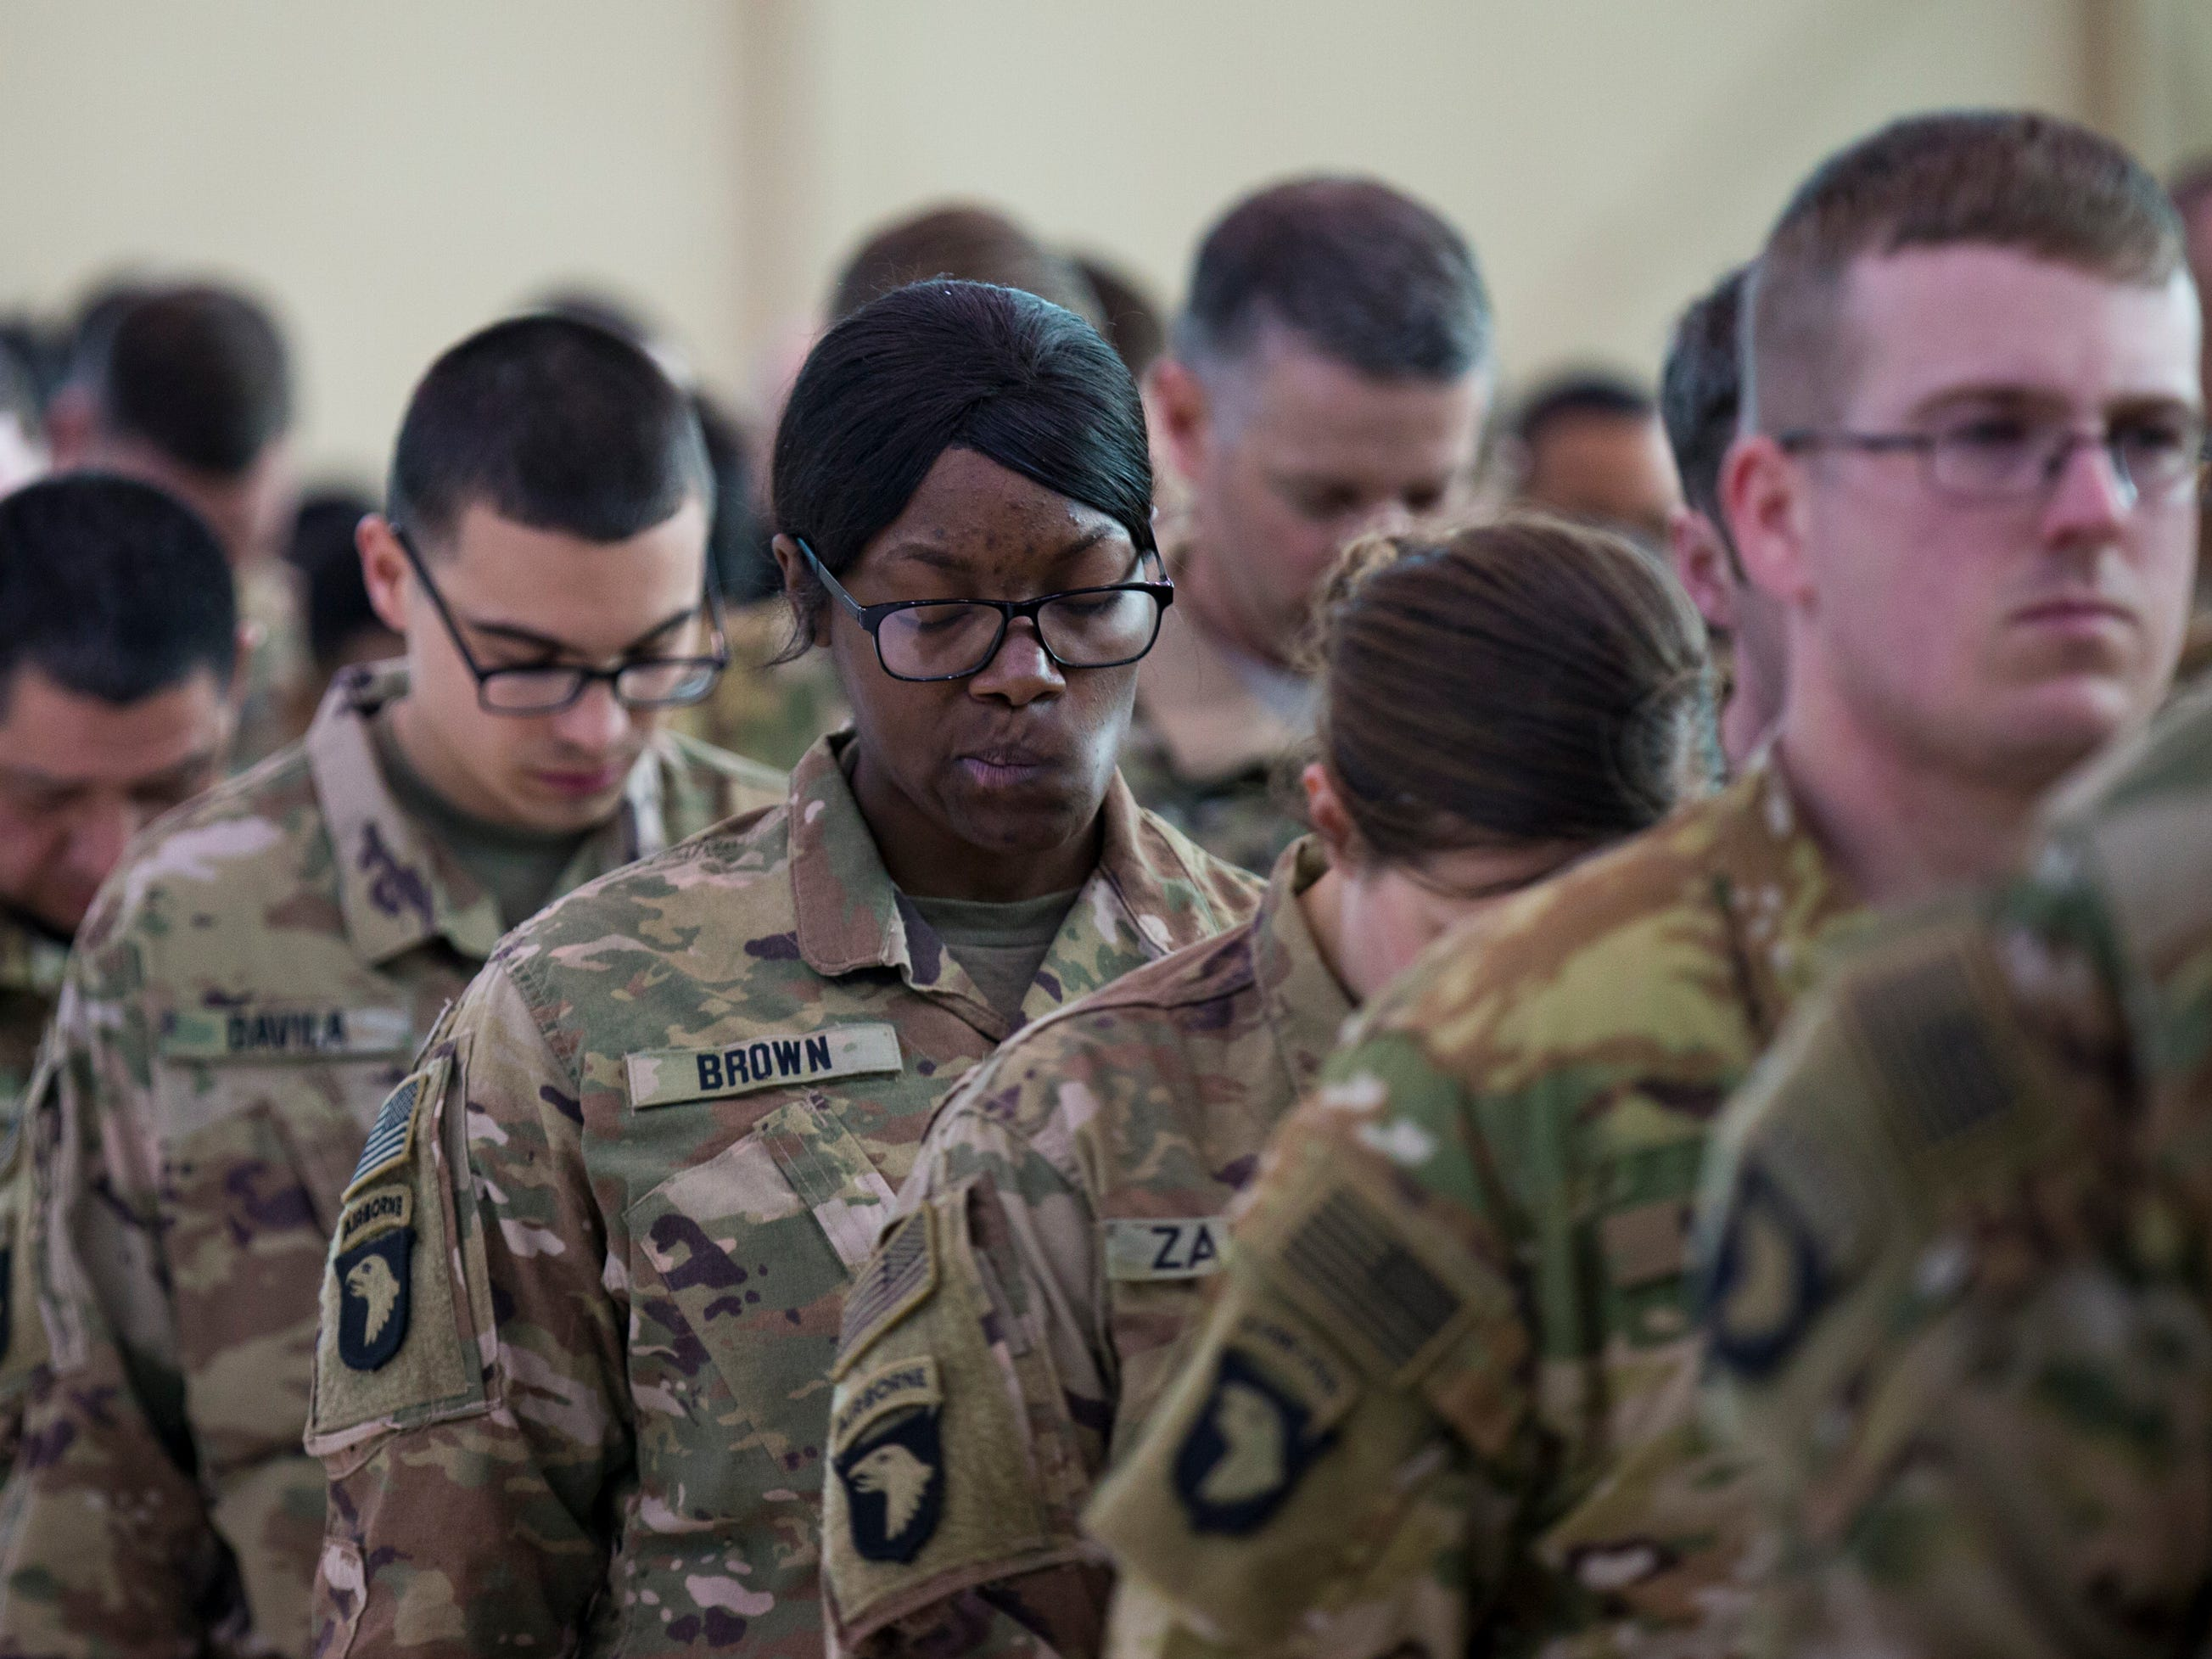 Soldiers bow their head as a short prayer is said during a homecoming ceremony for members of the 101st Combat Aviation Brigade and 101st Sustainment Brigade at Fort Campbell in Clarksville on Thursday, Feb. 21, 2019. The soldiers were returning from a nine-month deployment to Afghanistan.